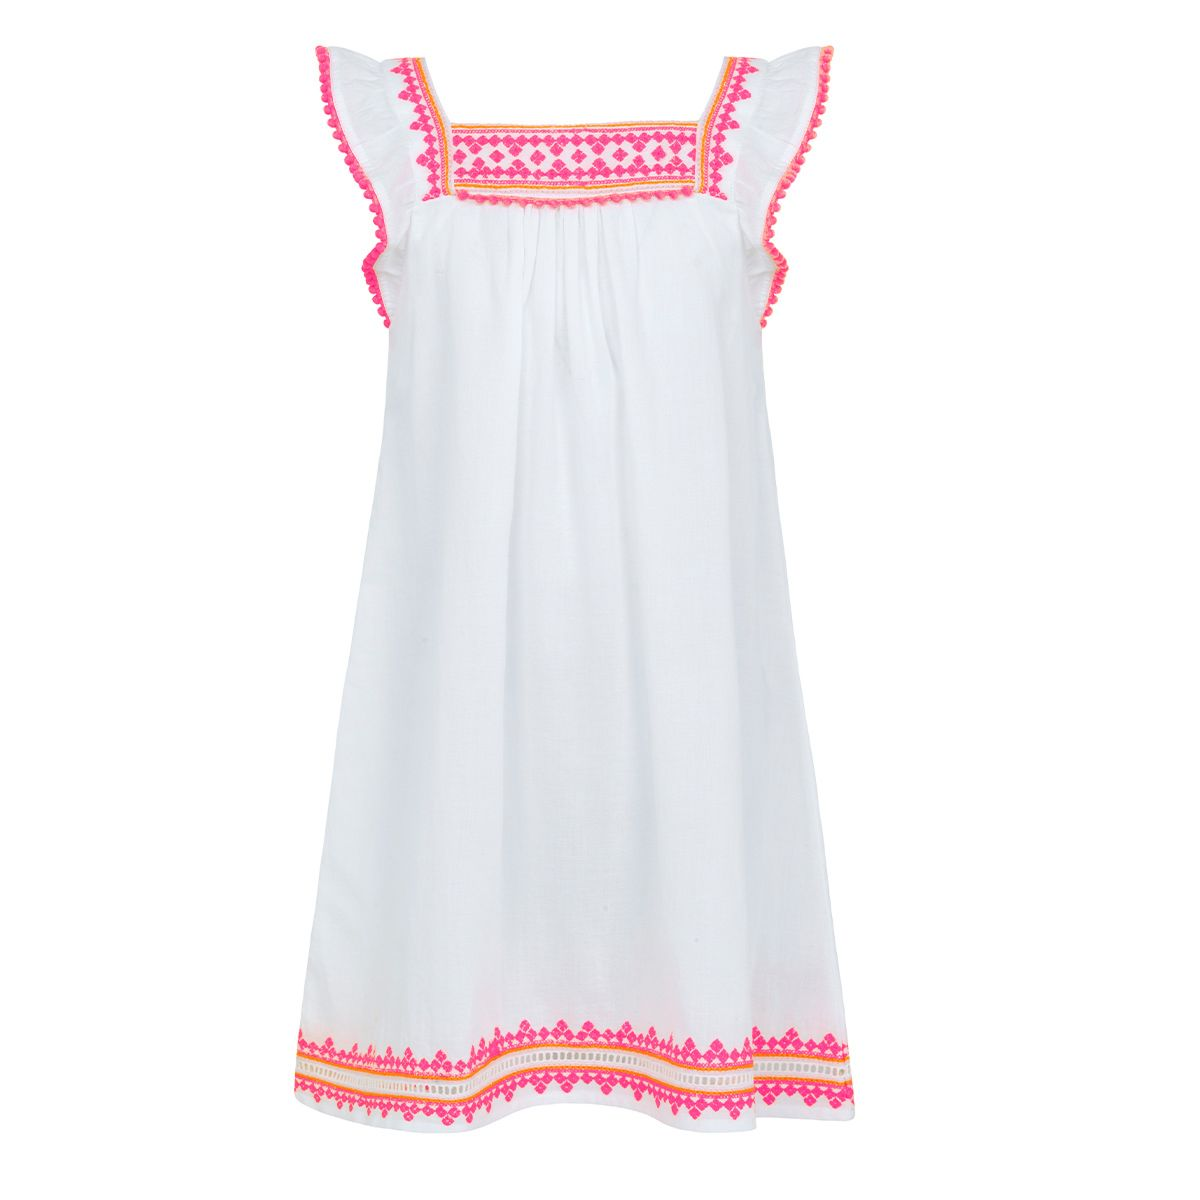 Sunuva Girls White embroidered flutter sleevedress